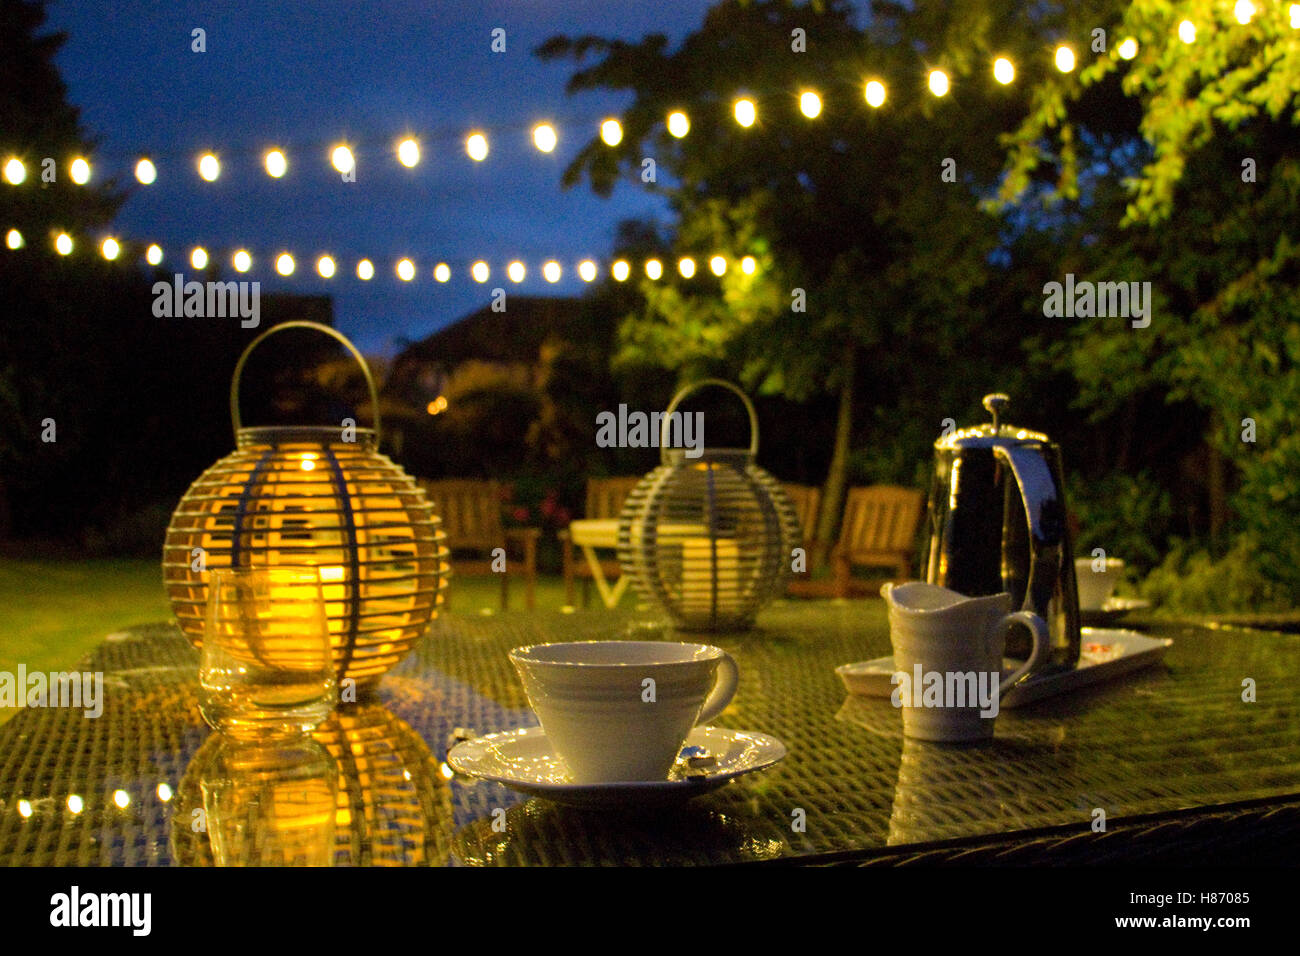 Late summer evening in an English garden with decorative lights - Stock Image